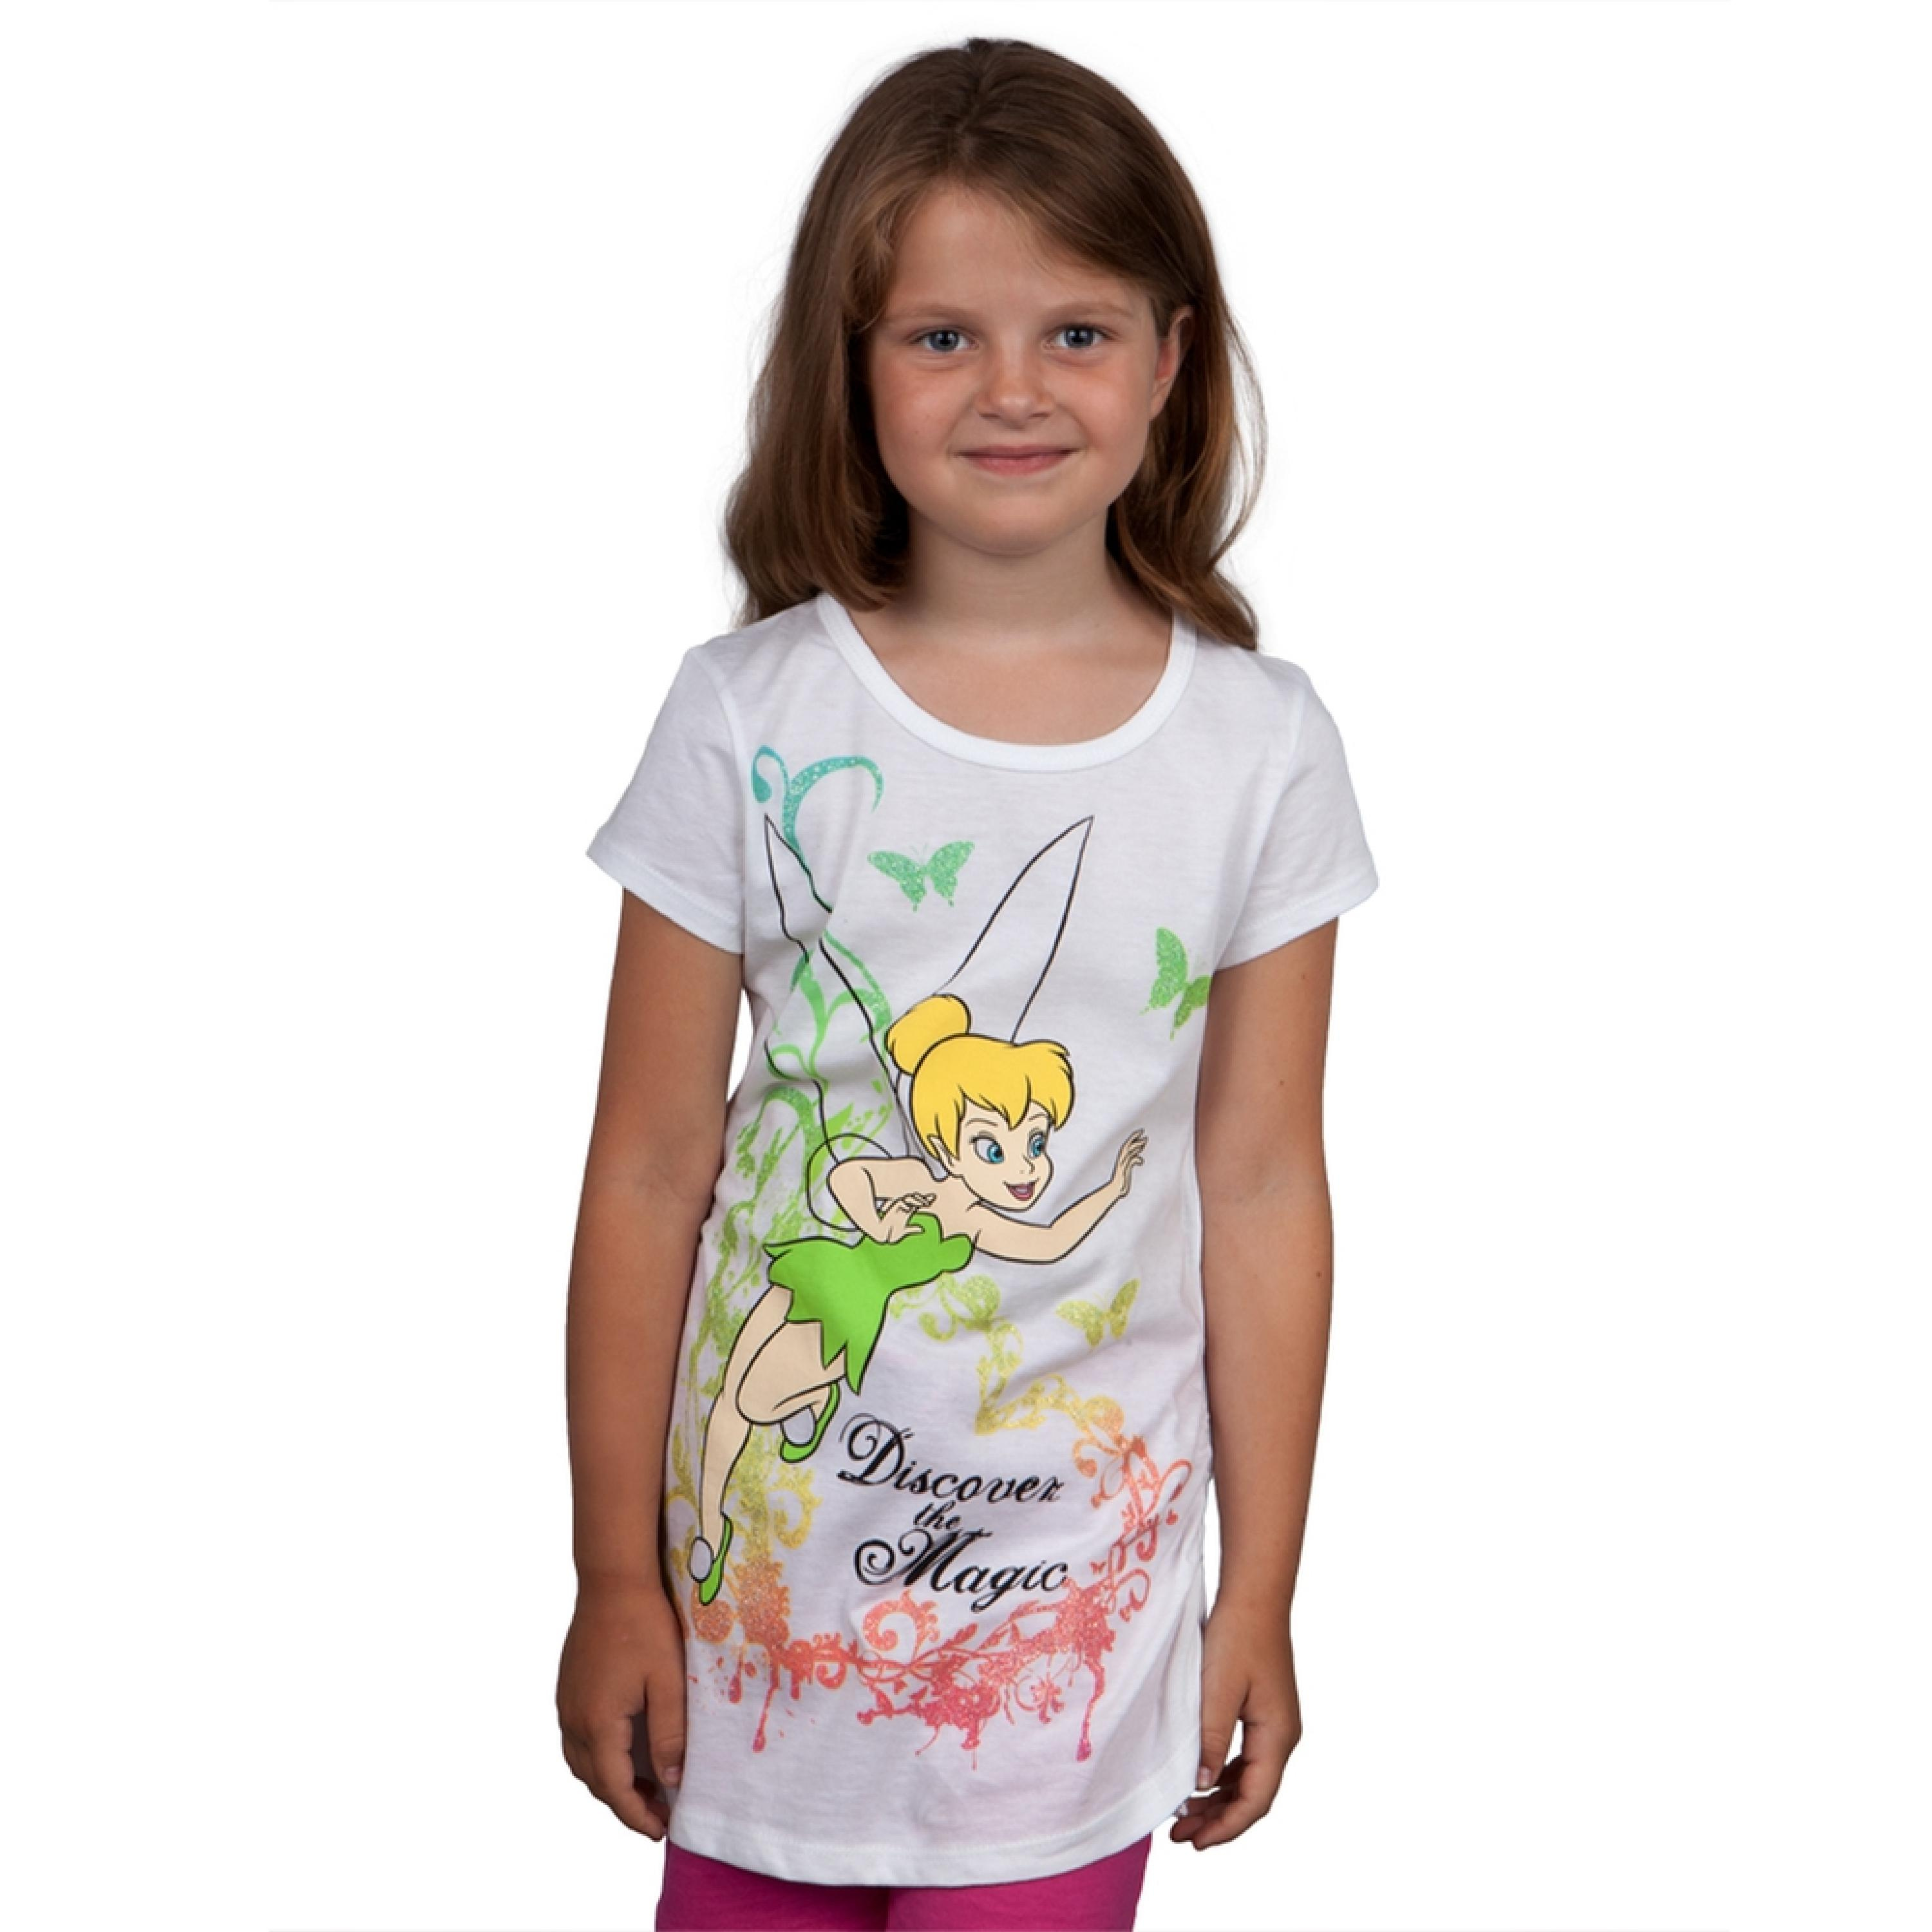 Tinkerbell - Discover the Magic Girls Youth T-Shirt